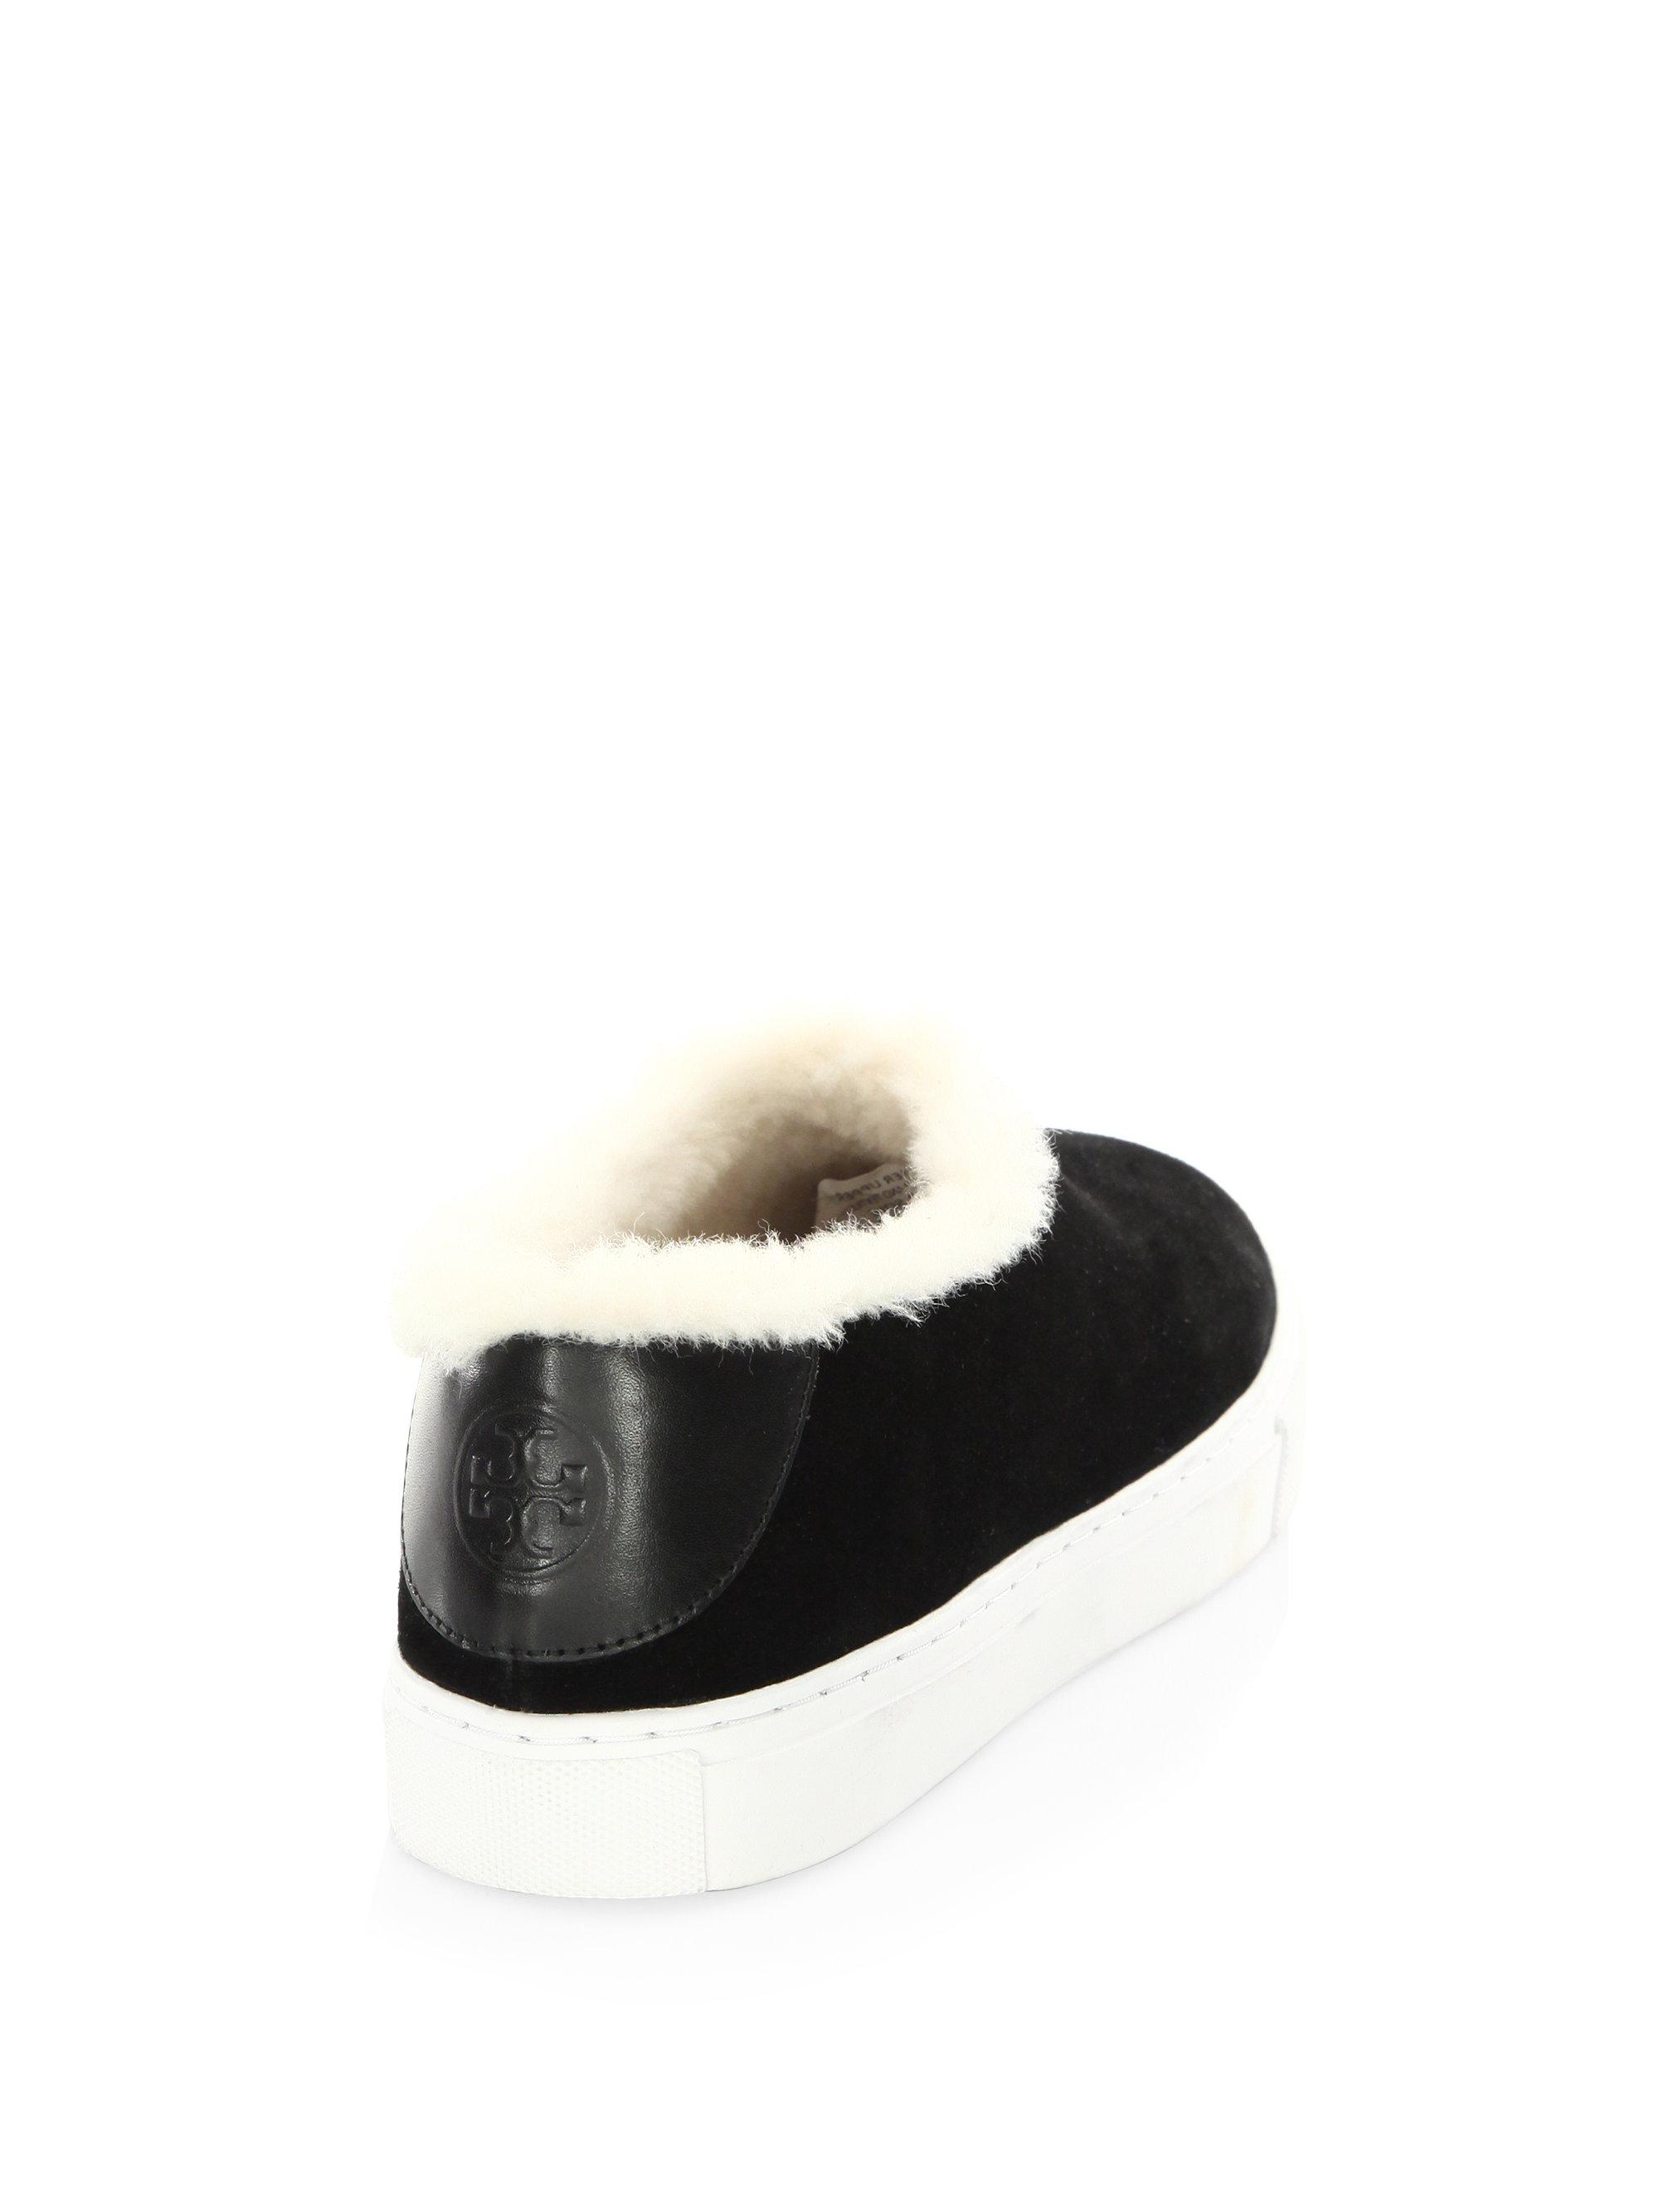 58592089ed1 Lyst - Tory Burch Miller Shearling Suede Slip-on Sneakers in Black